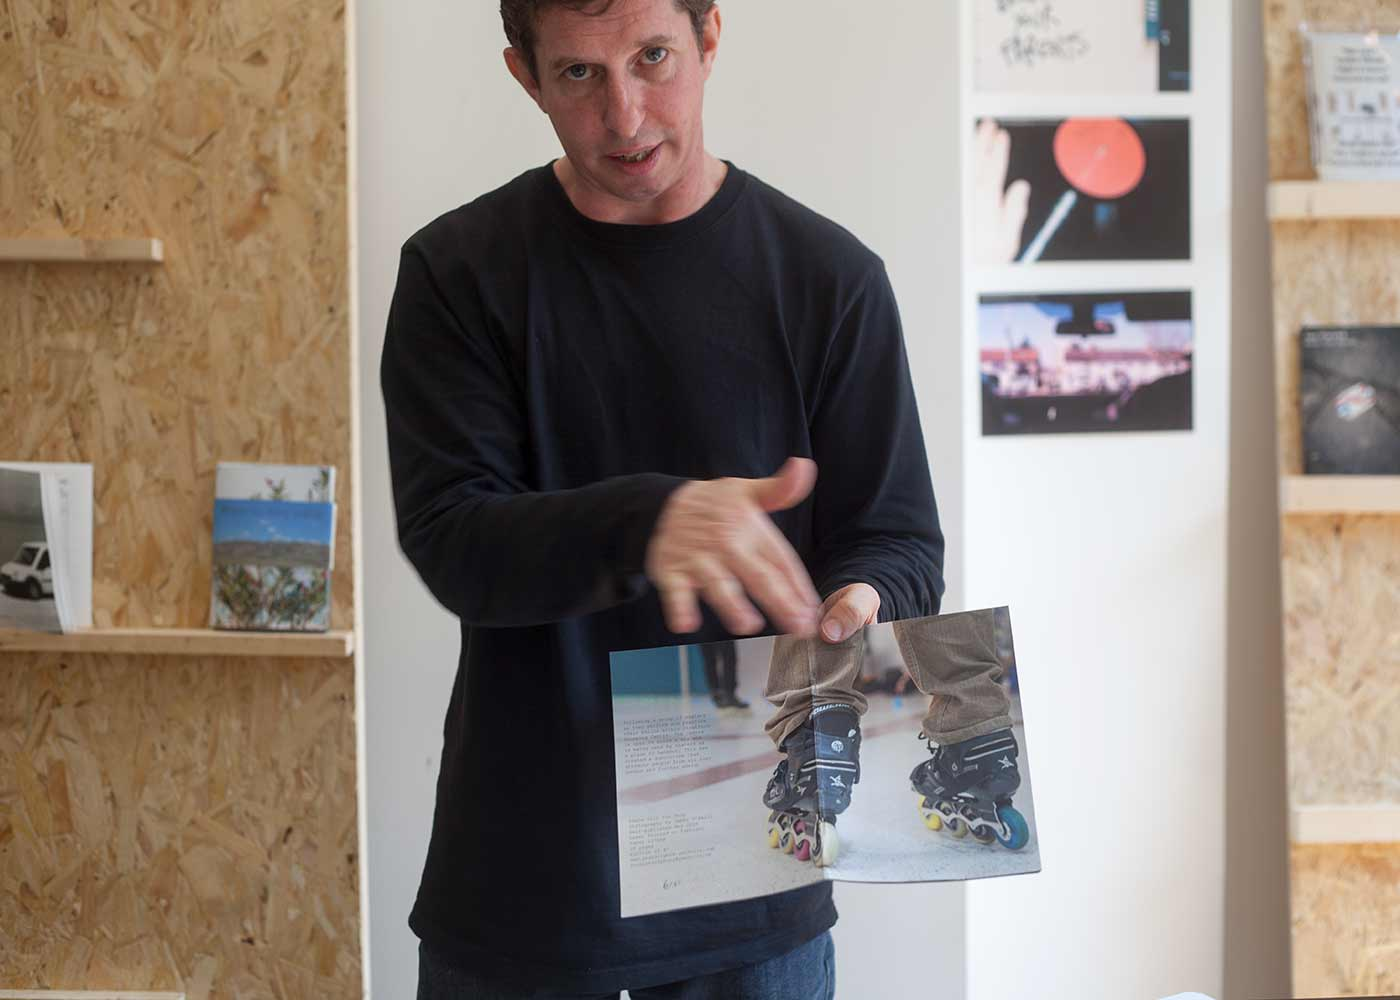 James O'Neill studies photography in the BA Photography (2nd year) at the School of Arts and Creative Industries, LSBU. James presented the new photobook SKATE 'TILL YOU DROP